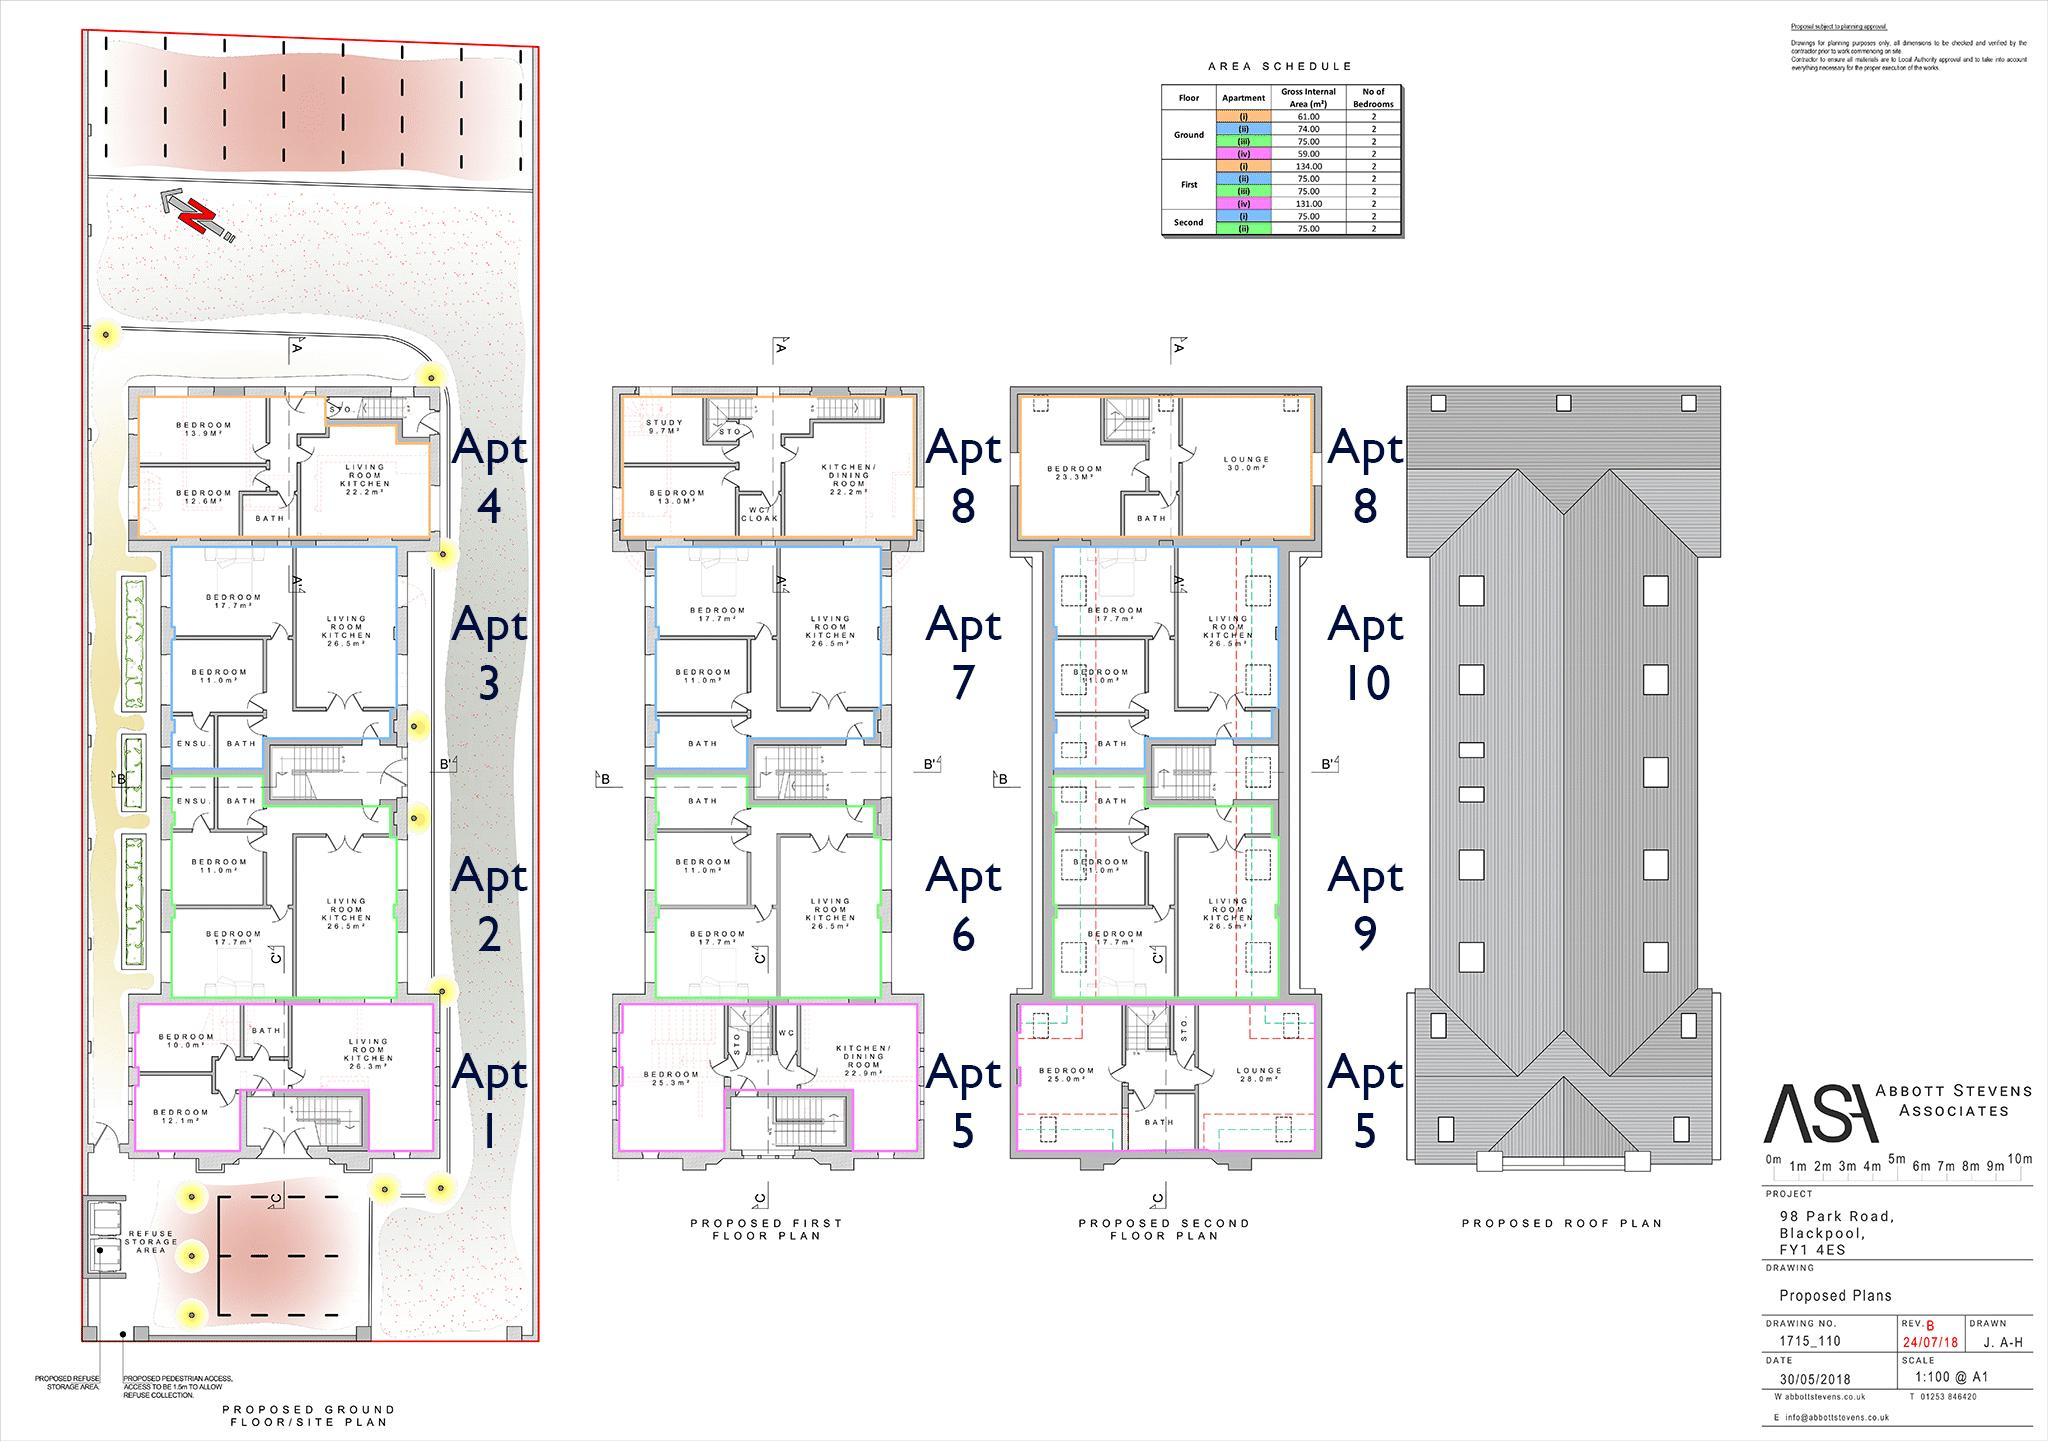 Proposed Layout Plans